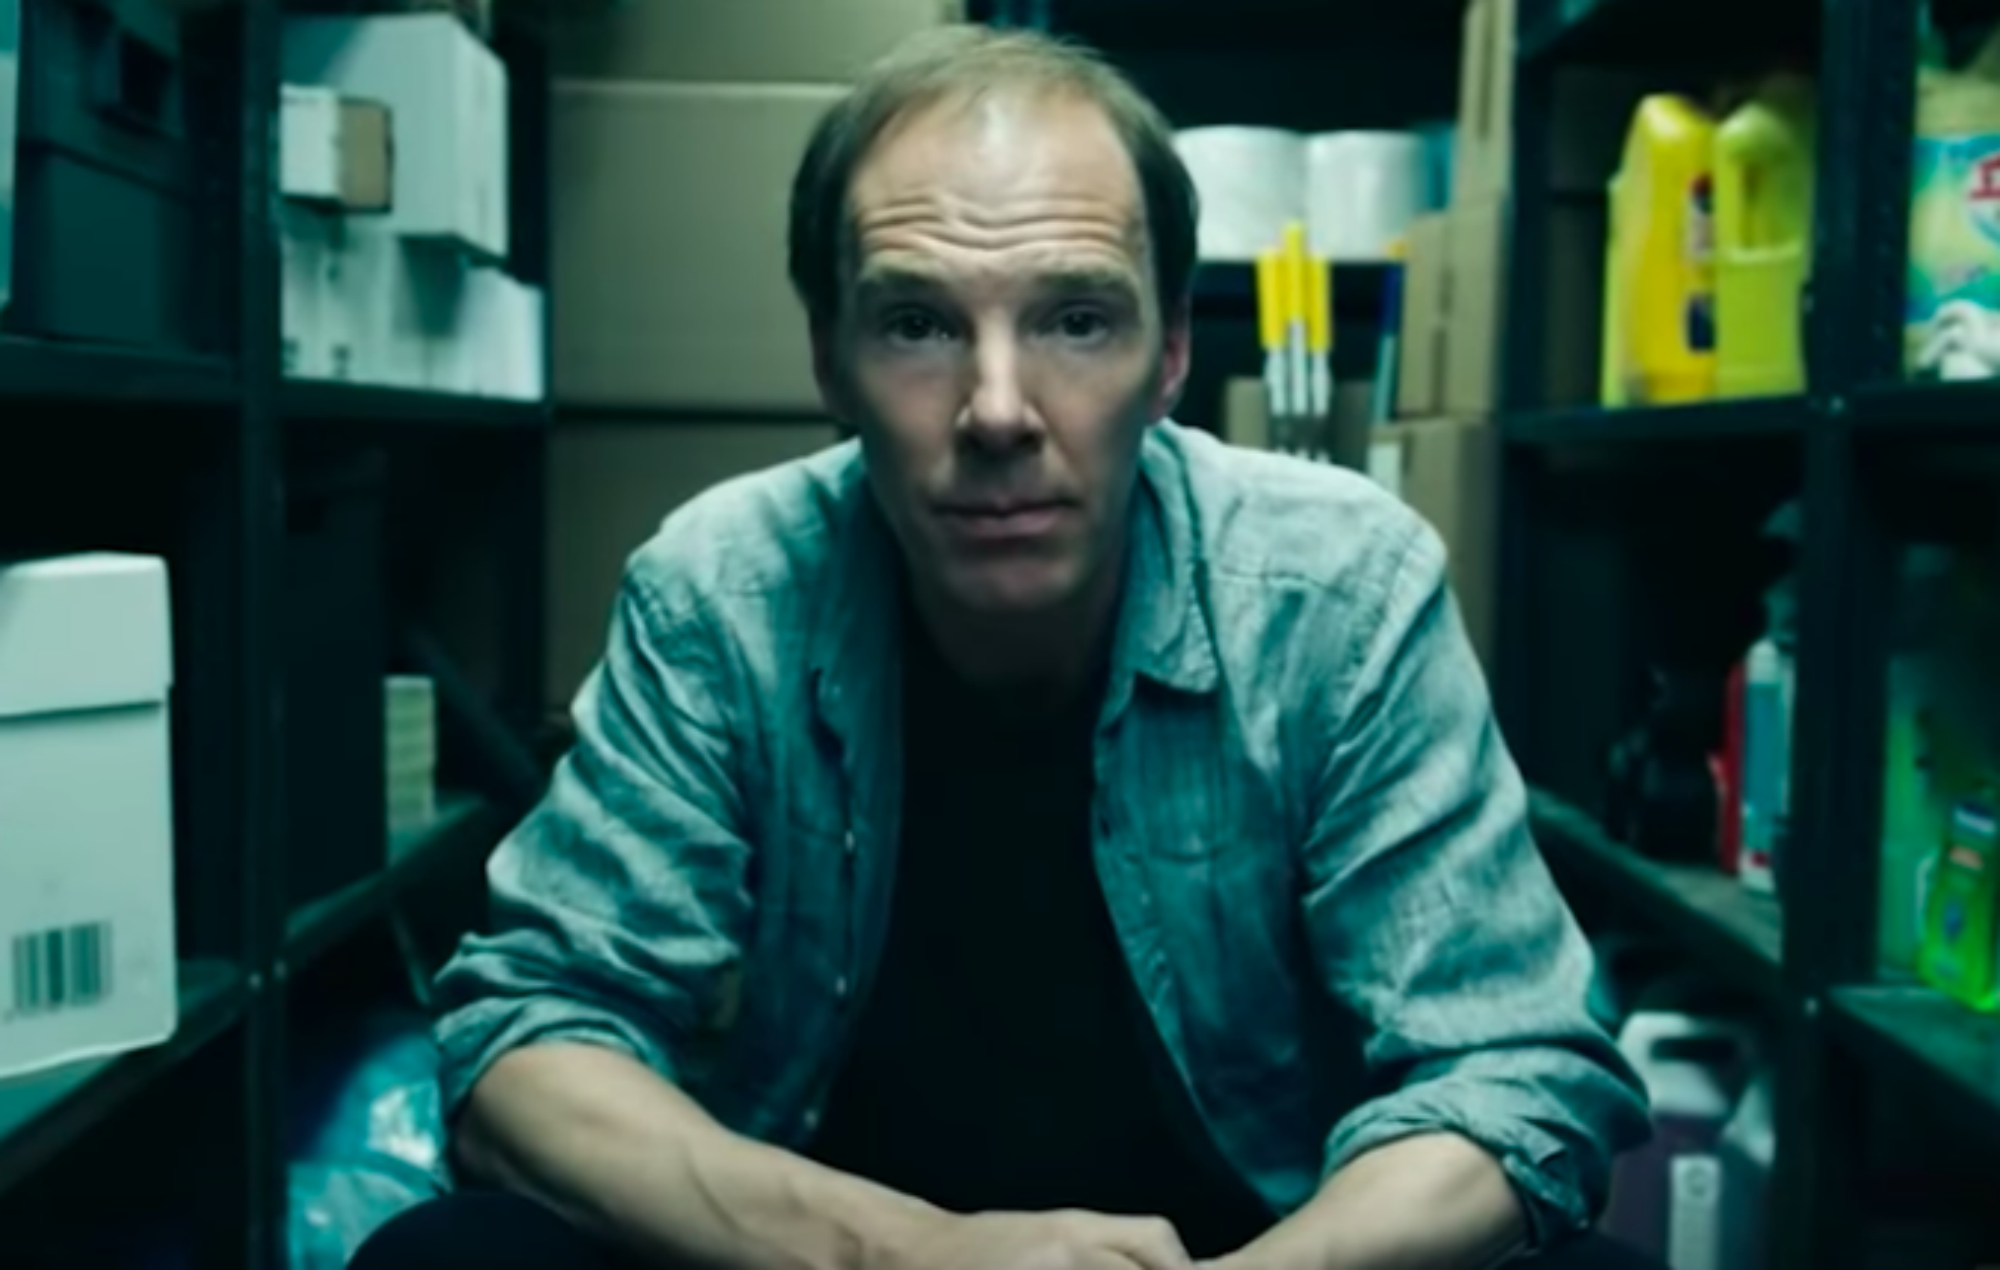 Hbo Made A Film About Brexit Starring Benedict Cumberbatch